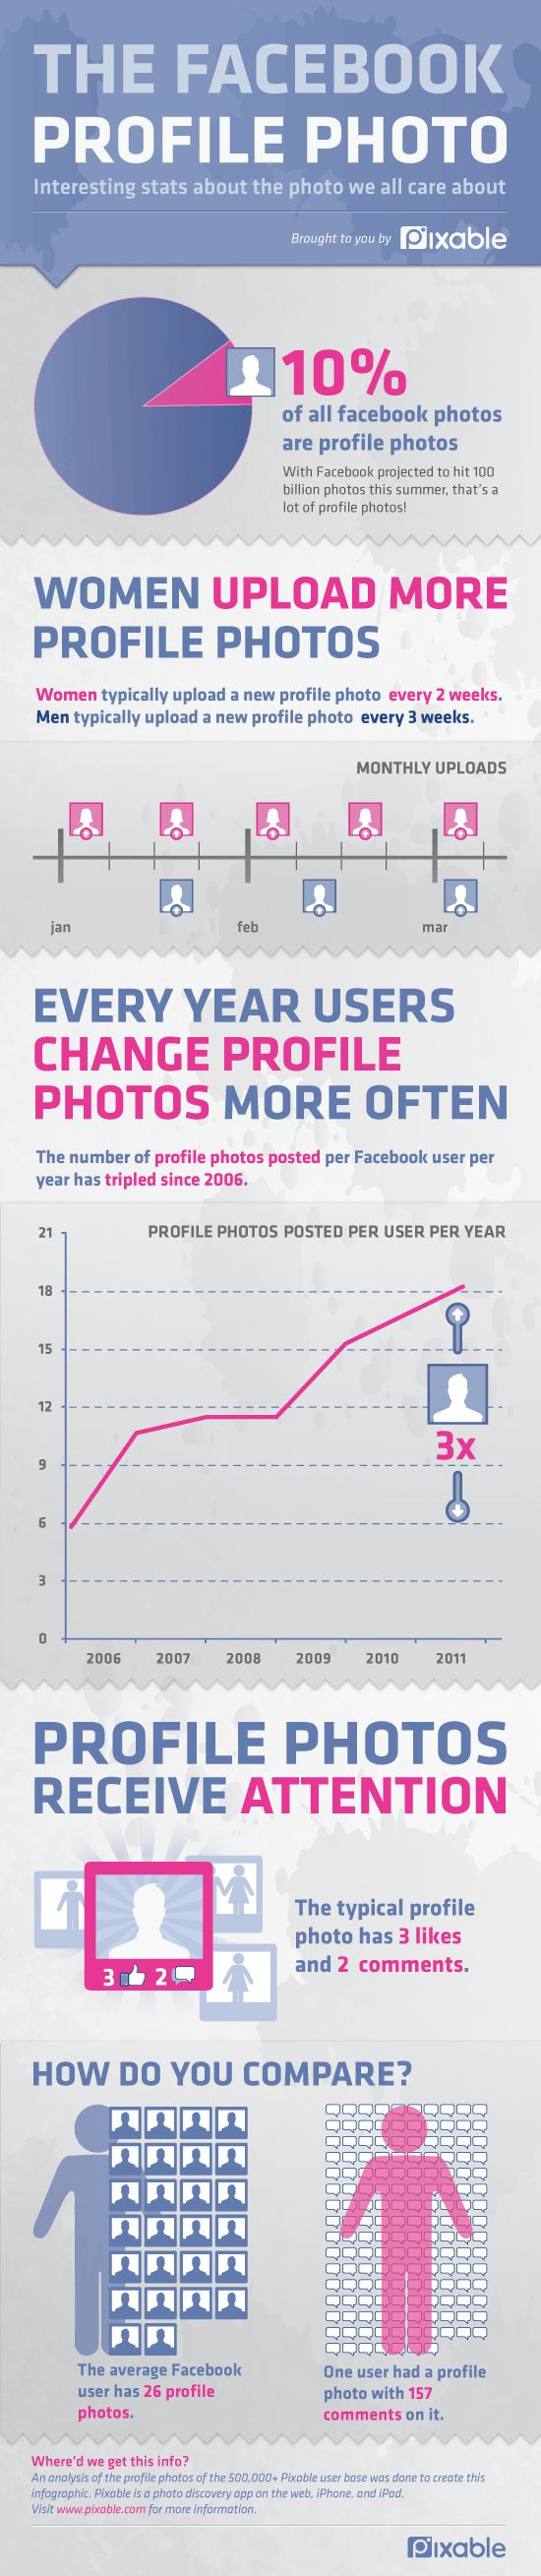 Facebook Profile Pictures — Facts & Figures [INFOGRAPHIC]